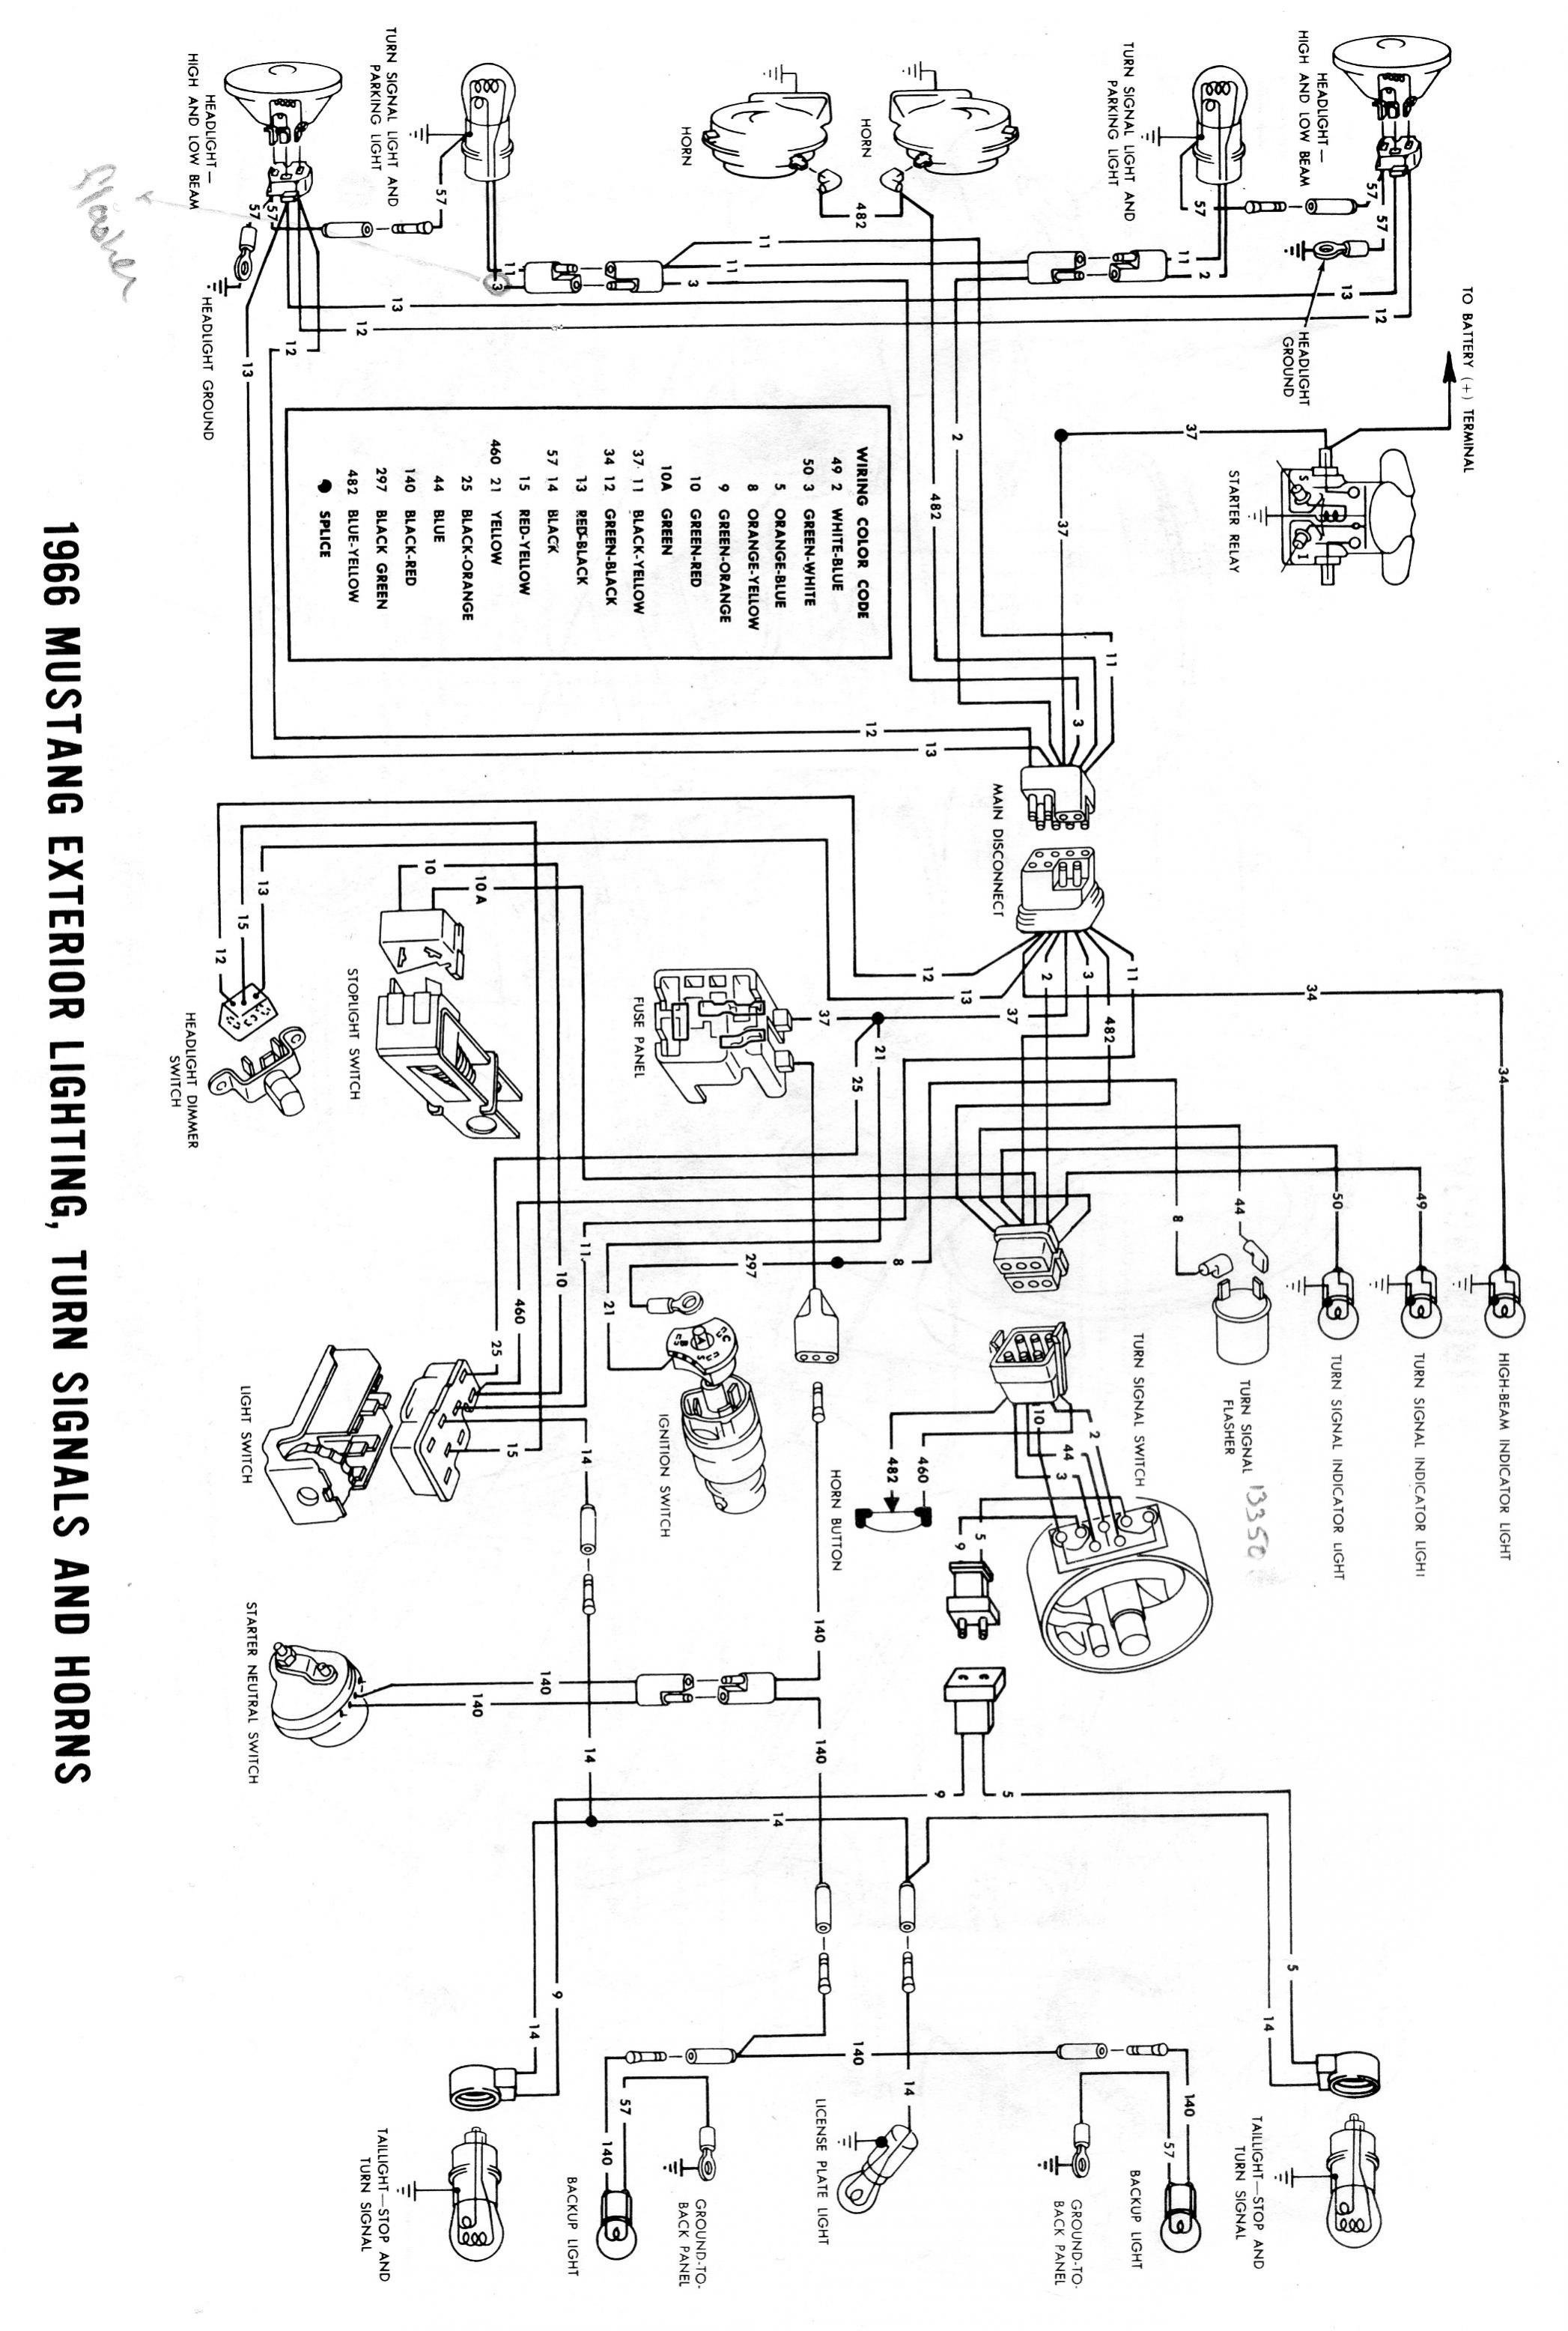 1964 1 2 mustang fuse box diagram